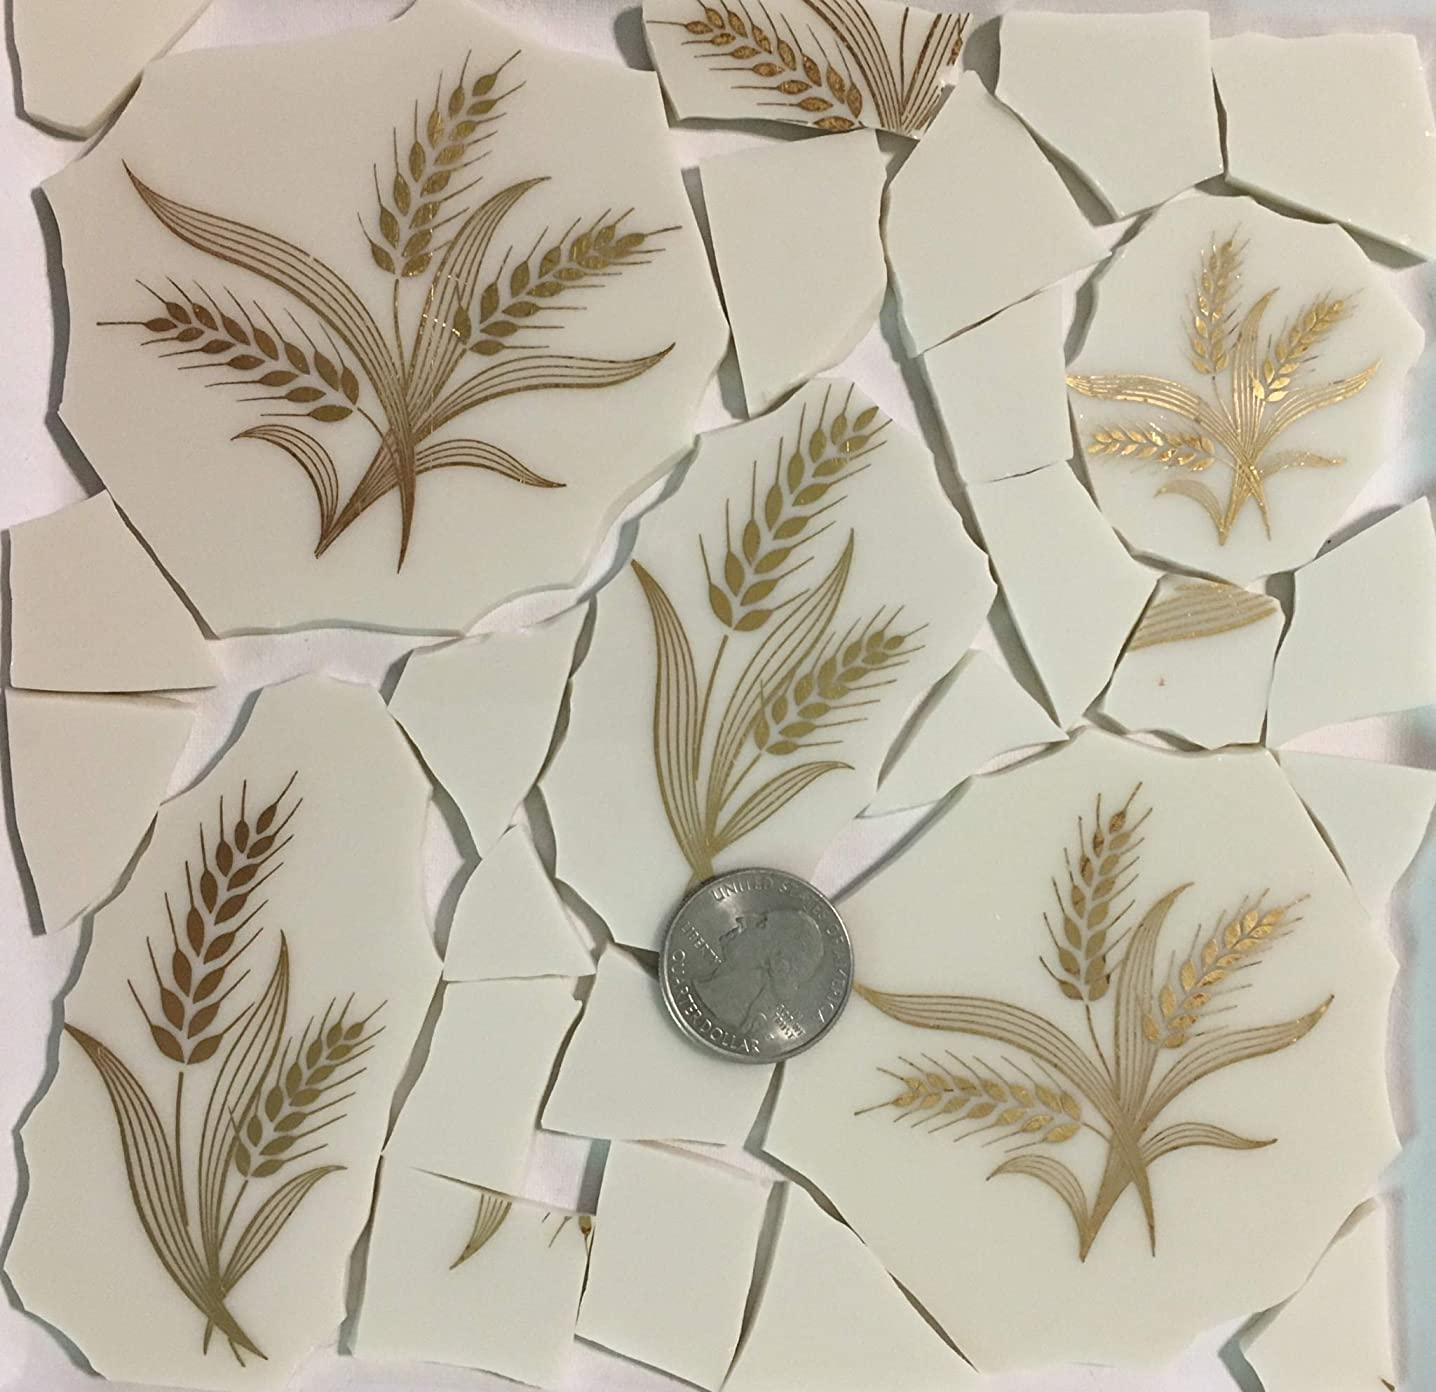 Mosaic Art & Crafts Supply ~ Metallic Gold Wheat Design Cream White China Tiles (B890)